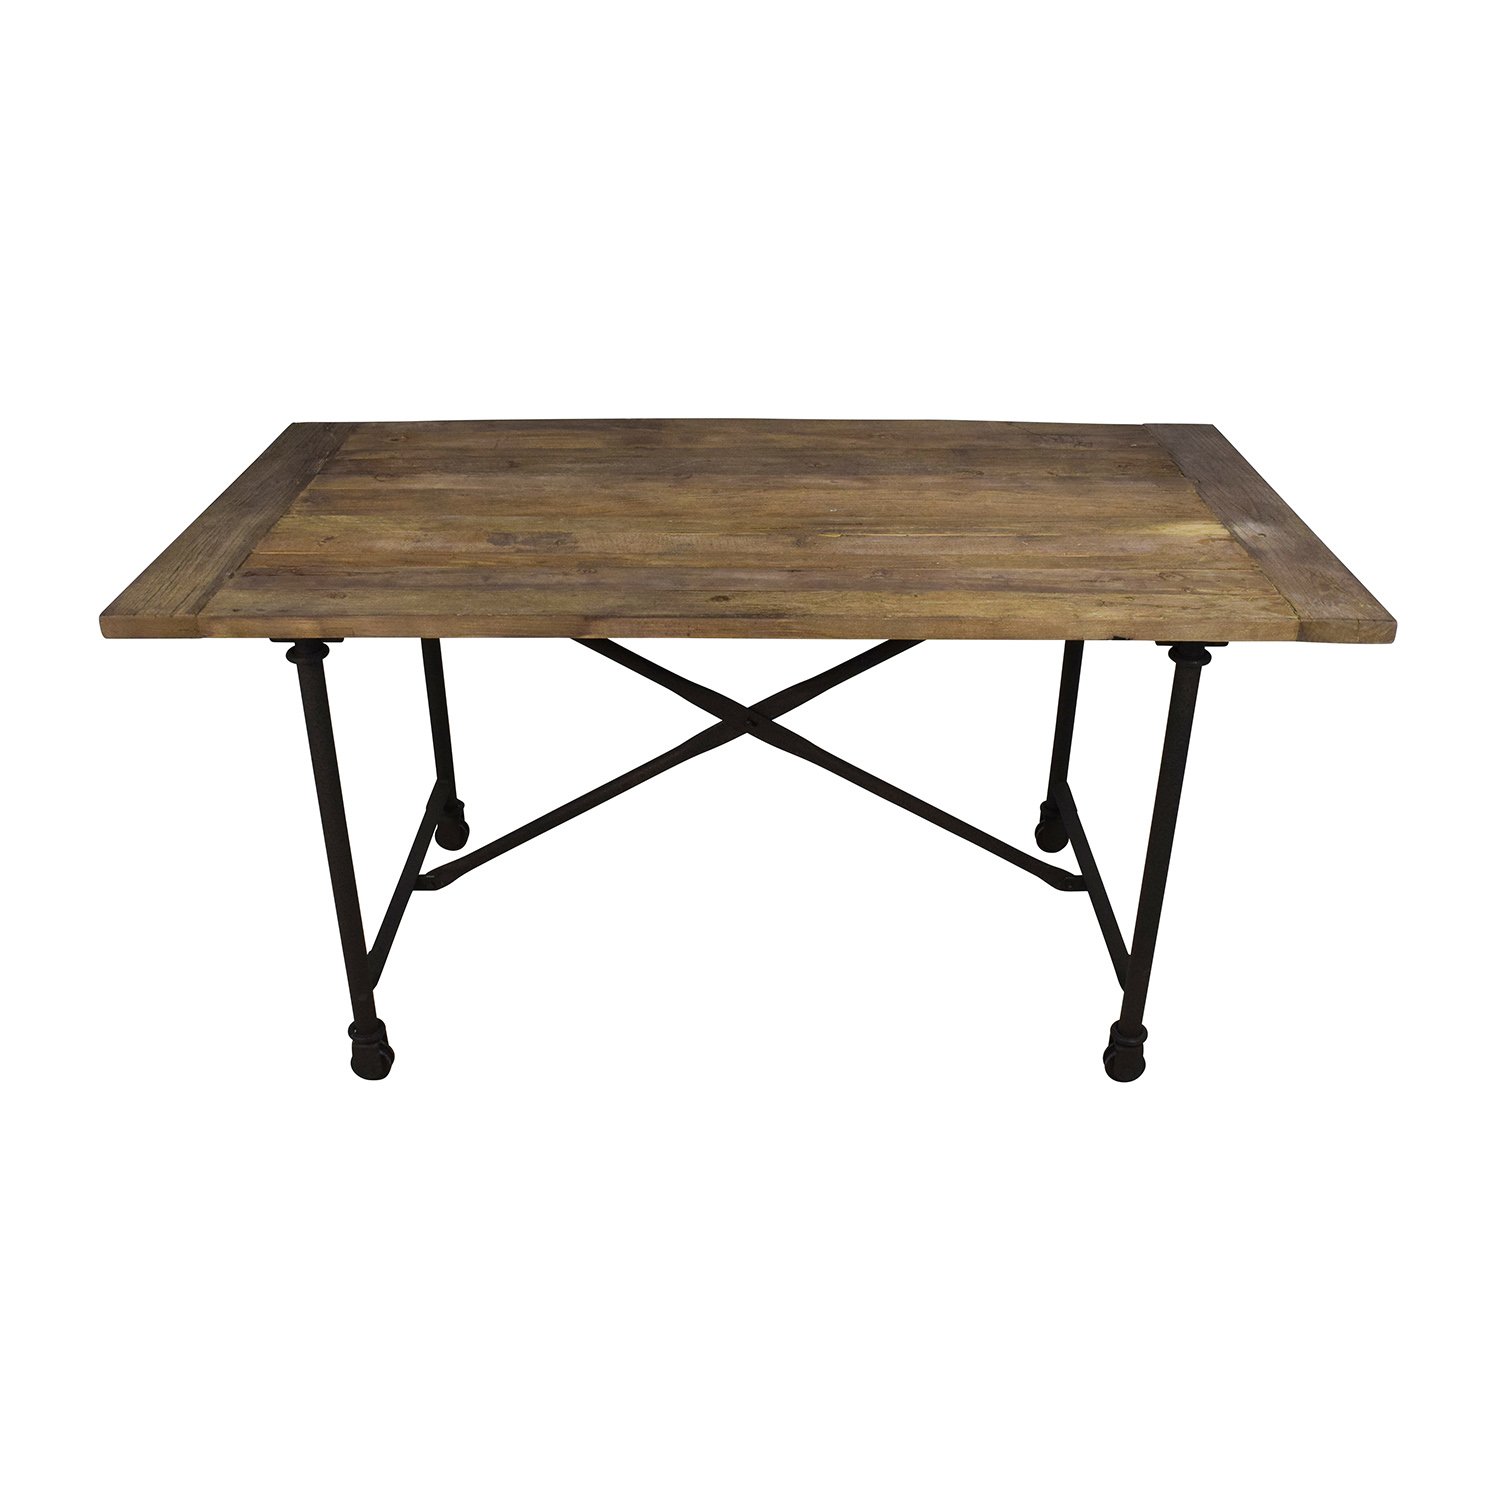 Restoration Hardware Reclaimed Natural Elm Dining Table sale